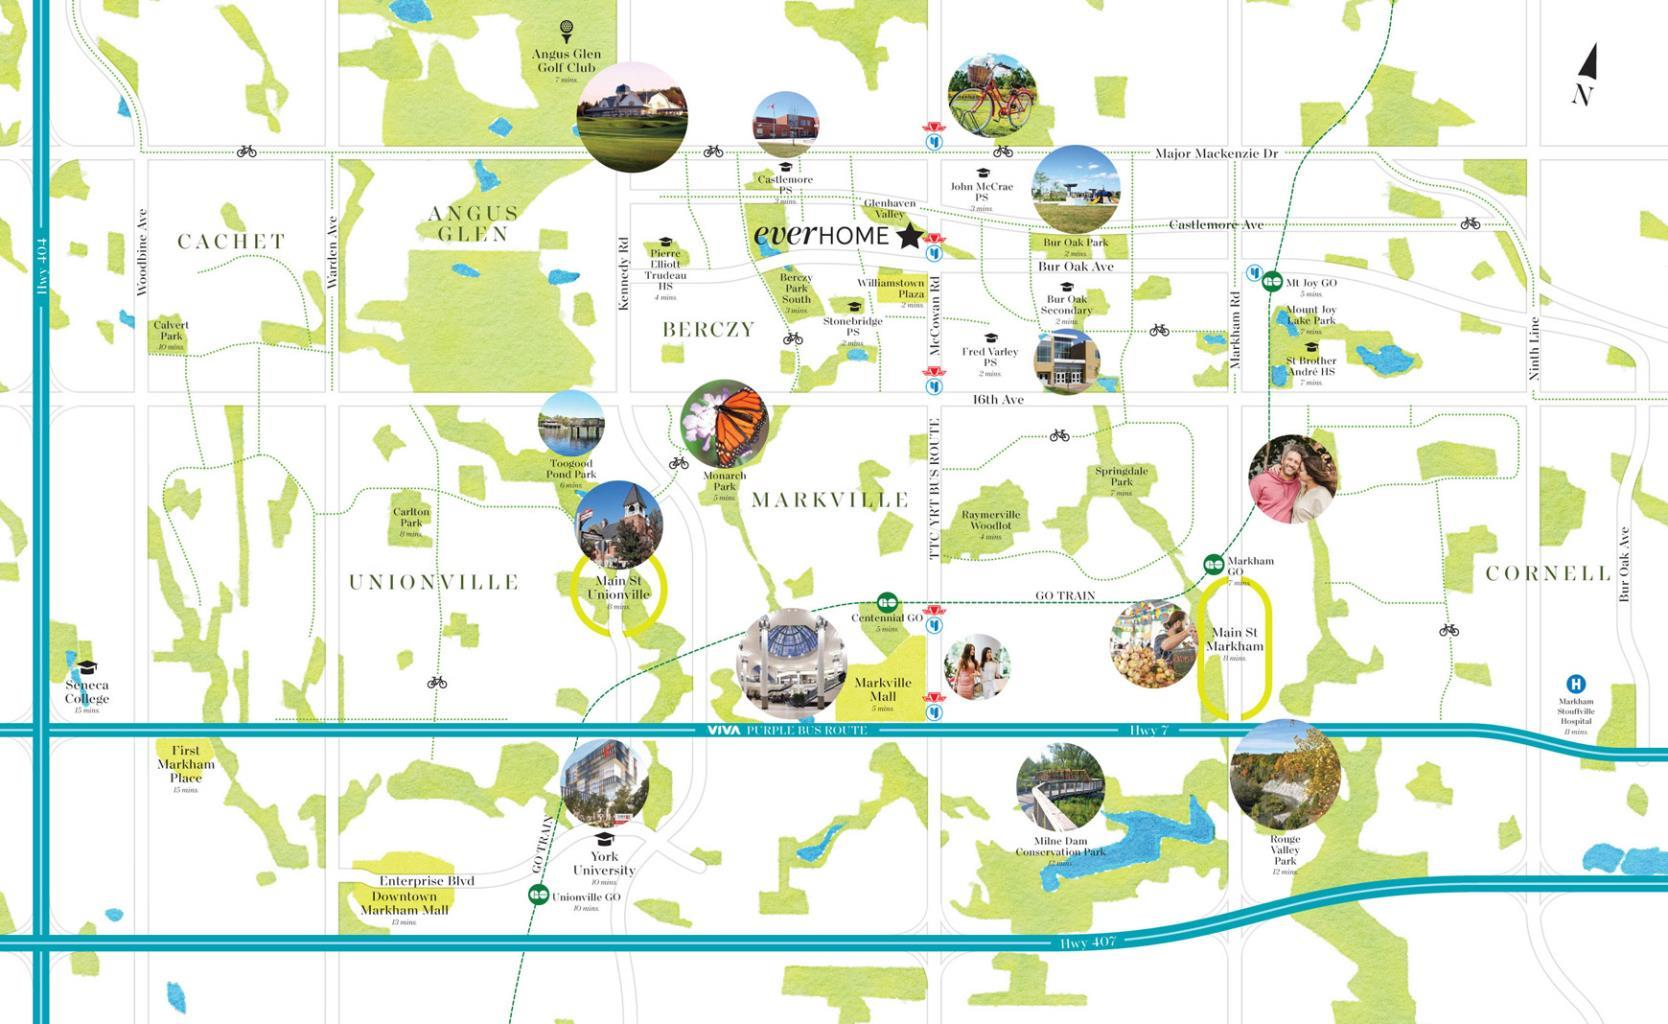 Everhome Condos location and site map